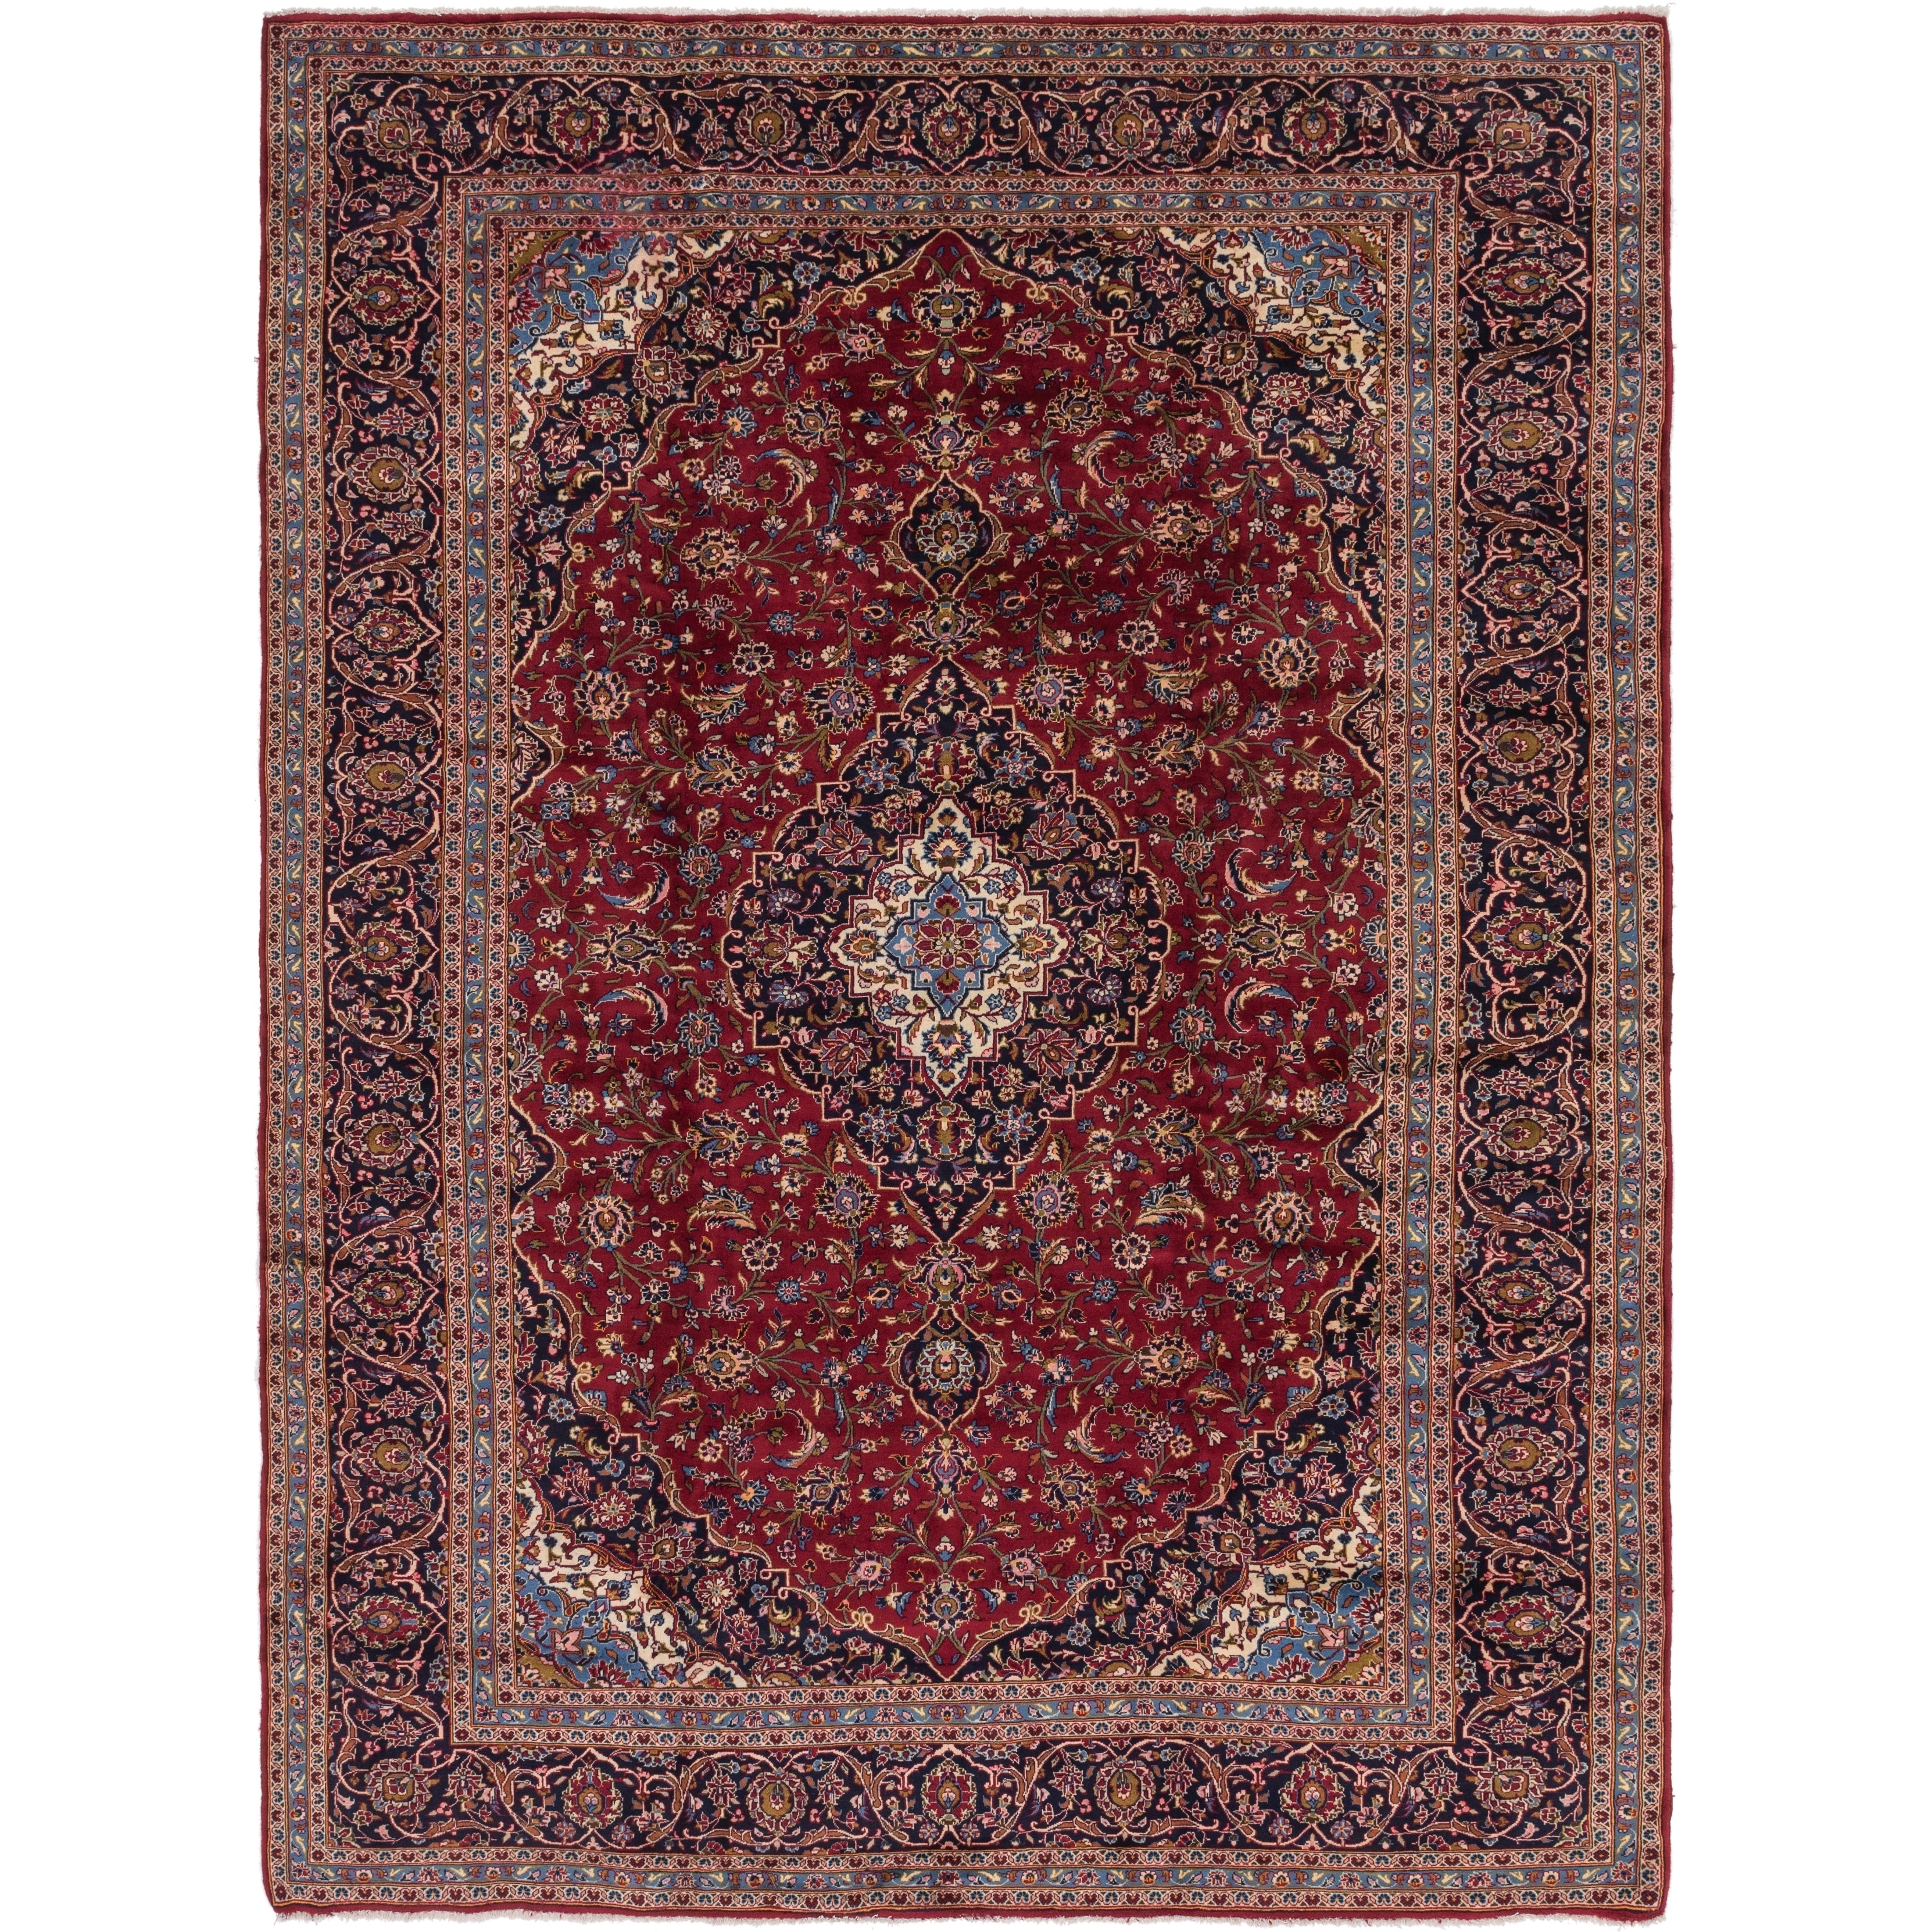 Hand Knotted Kashan Wool Area Rug - 9 7 x 13 (Red - 9 7 x 13)